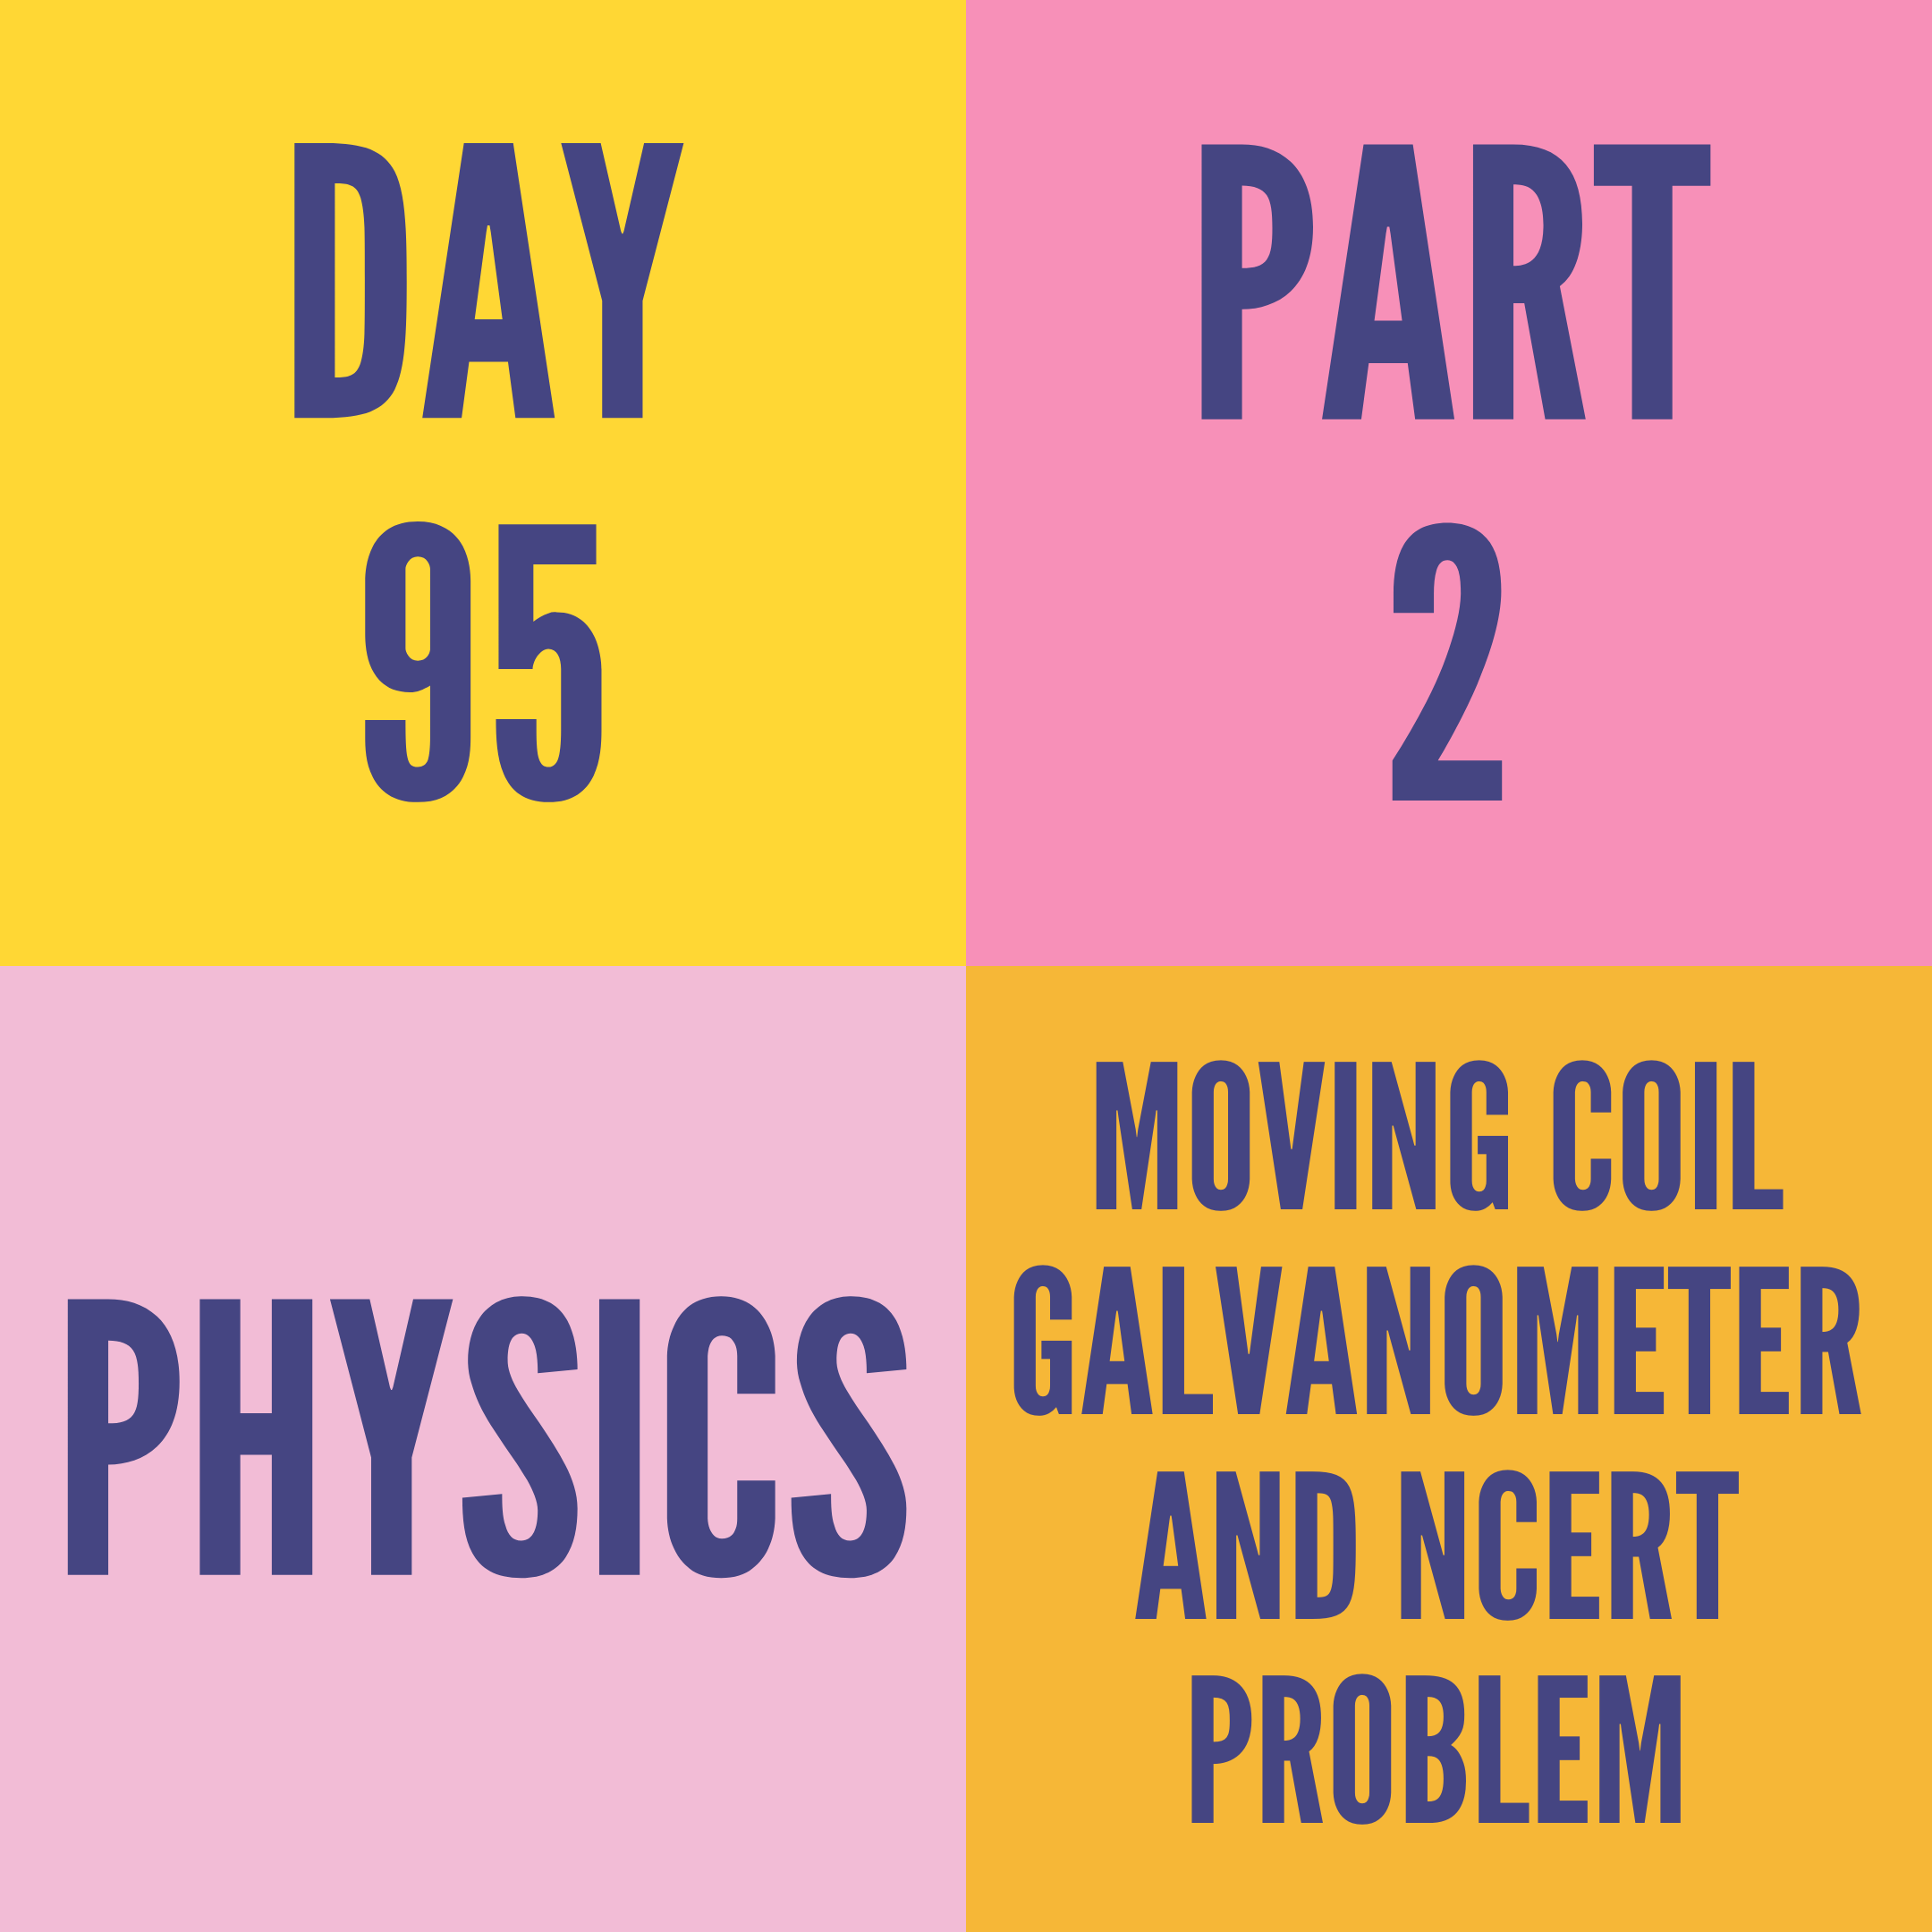 DAY-95 PART-2 MOVING COIL GALVANOMETER AND NCERT PROBLEM